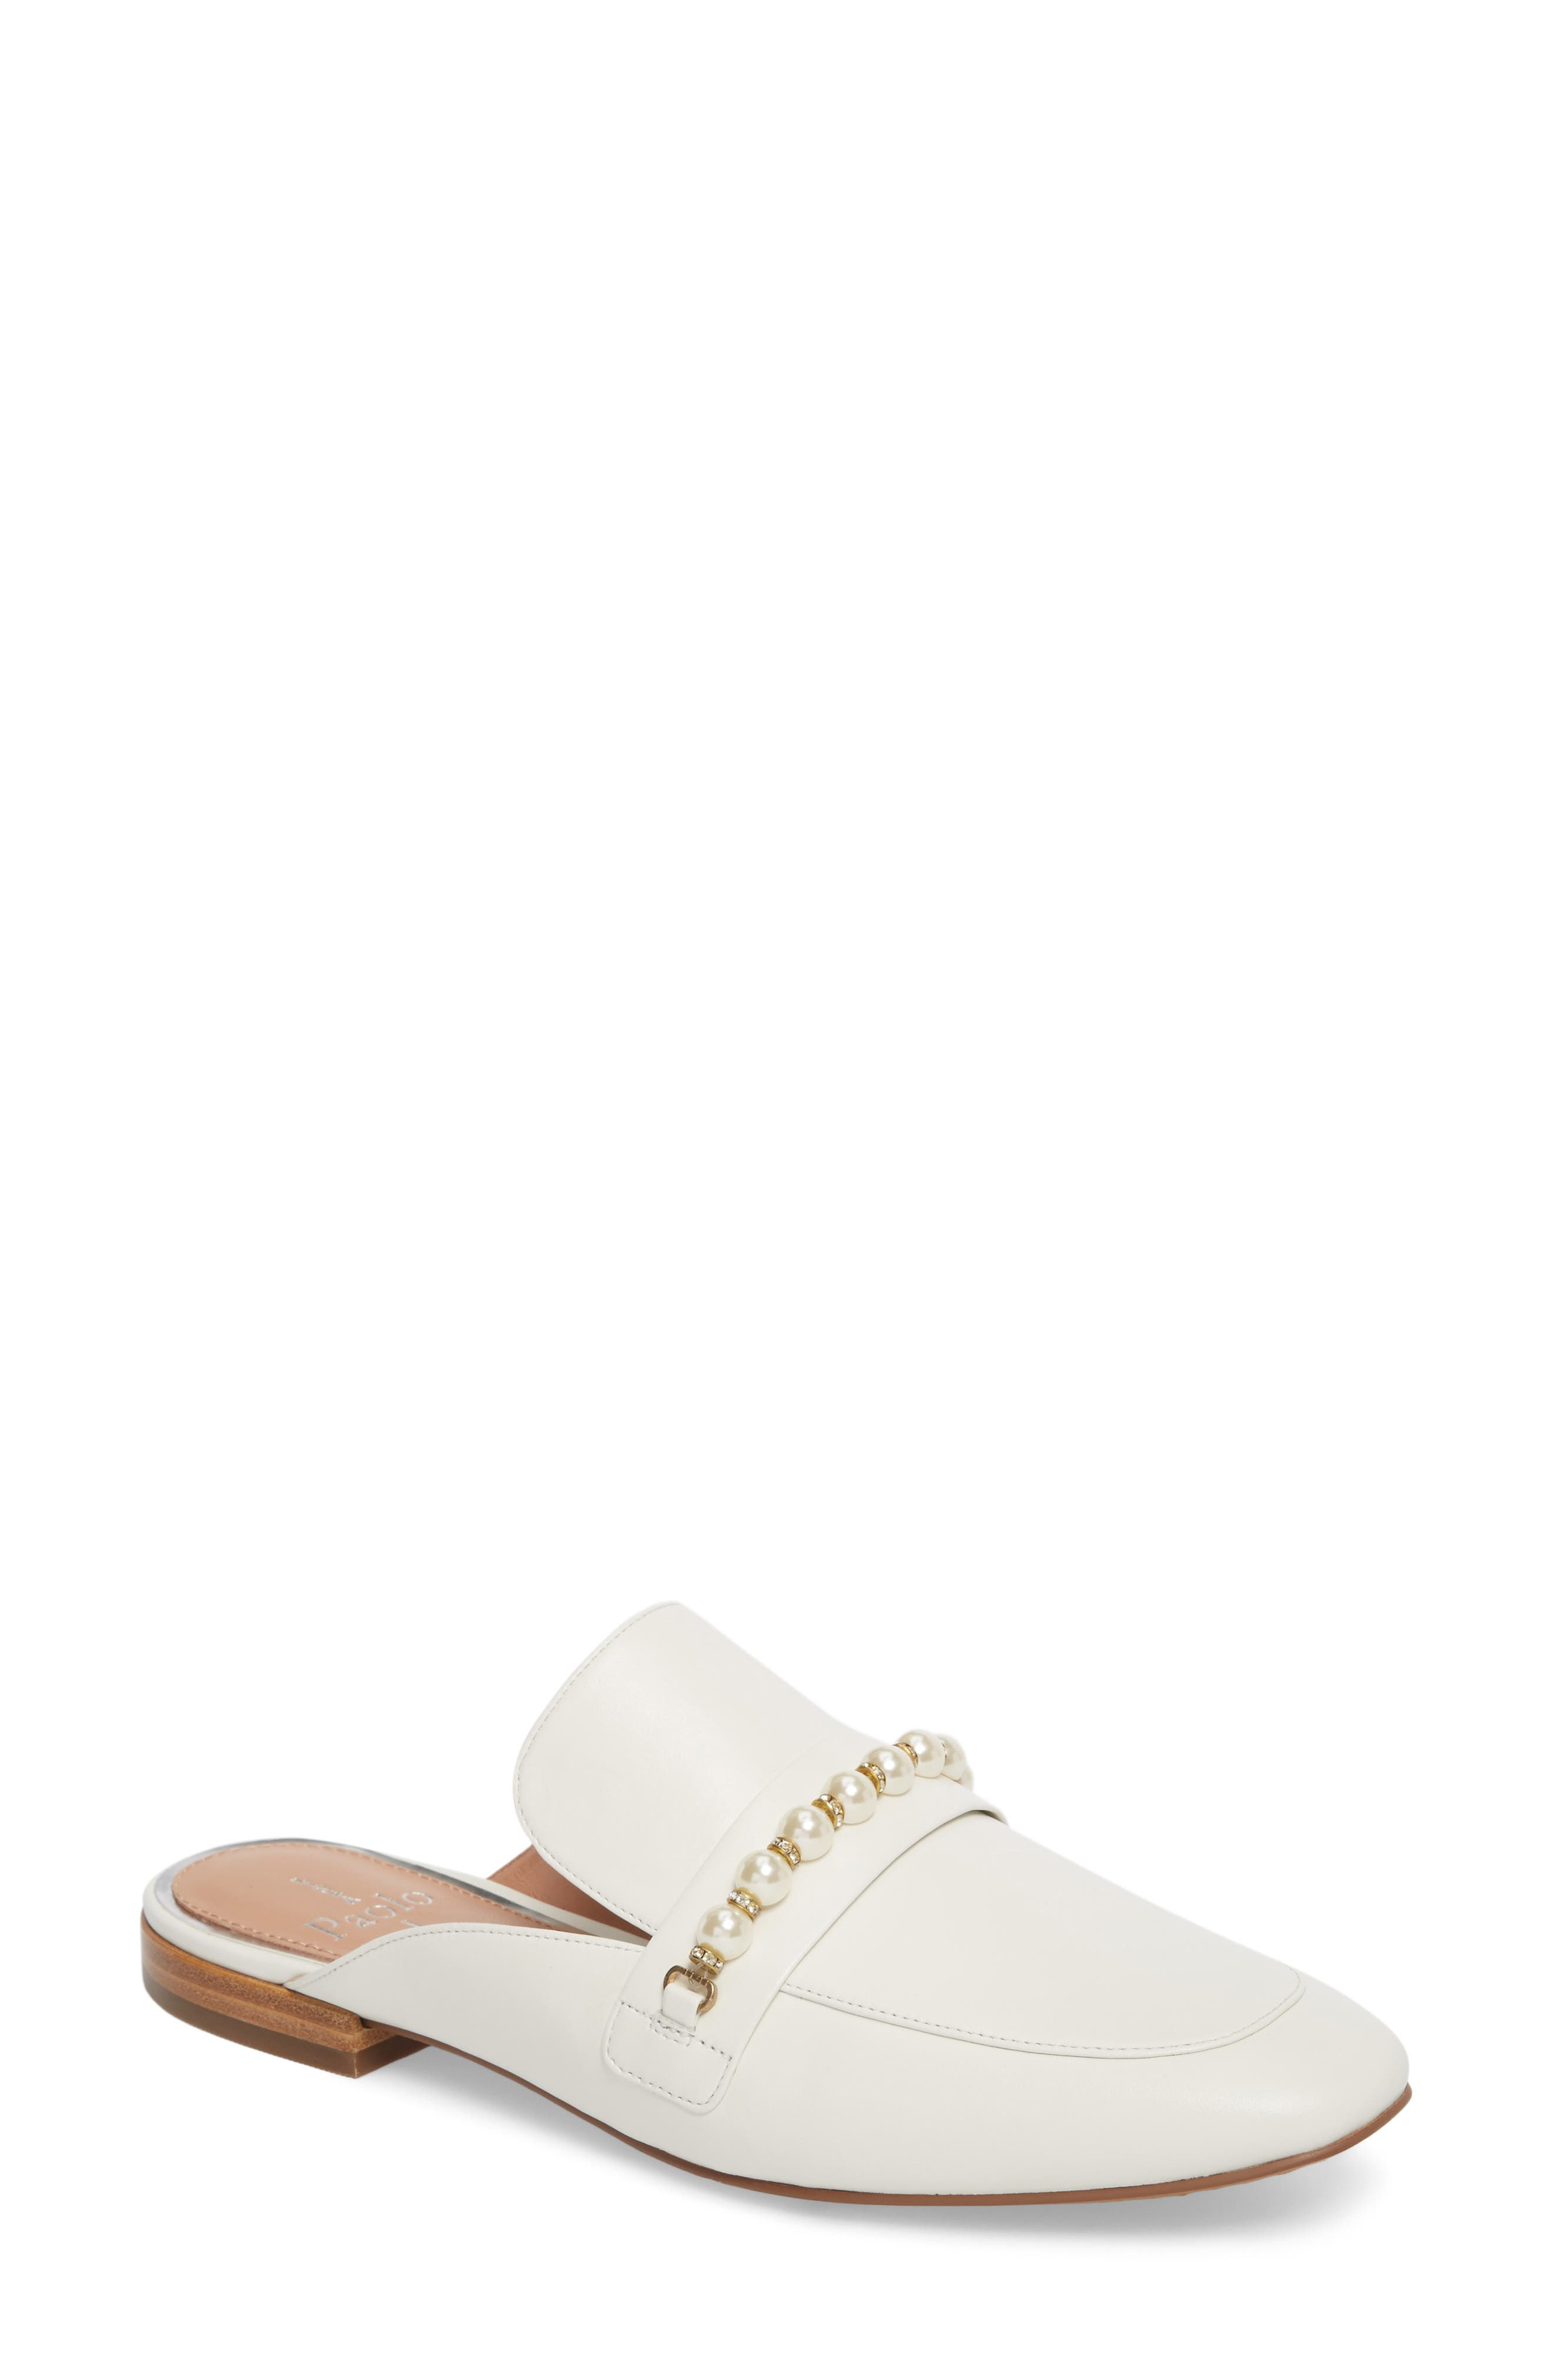 Axel Mule,                             Main thumbnail 1, color,                             Off White Leather